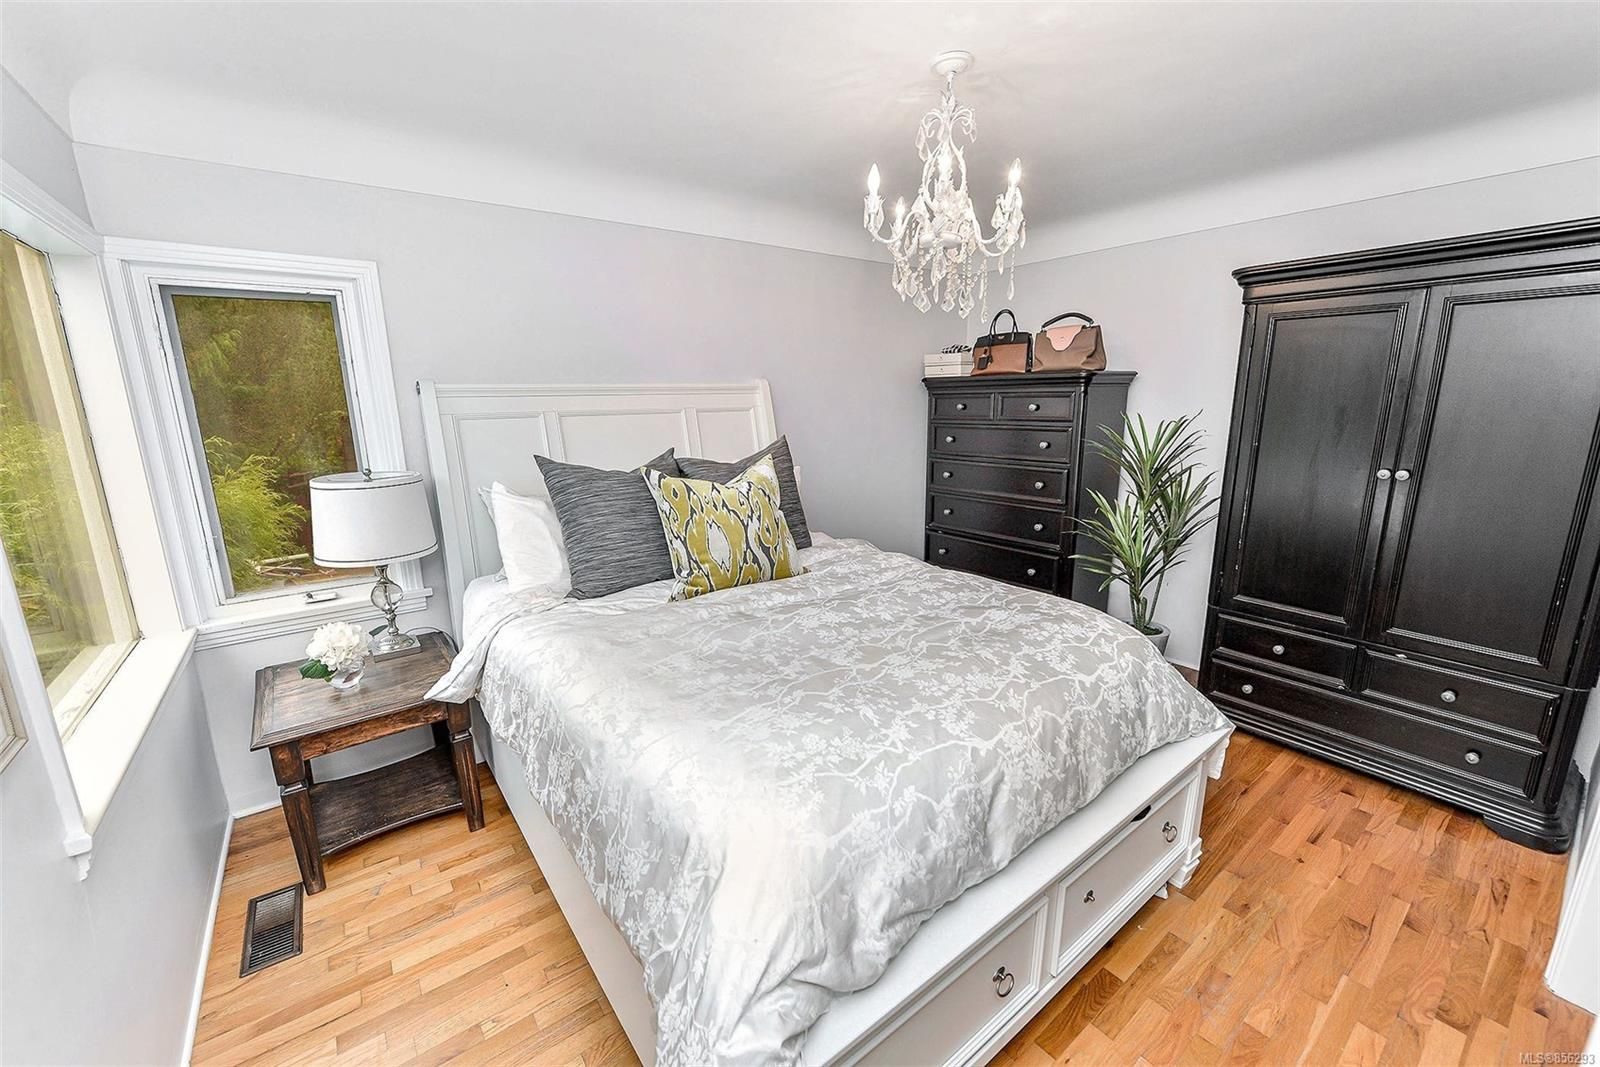 Photo 18: Photos: 1753 Armstrong Ave in : OB North Oak Bay House for sale (Oak Bay)  : MLS®# 856293